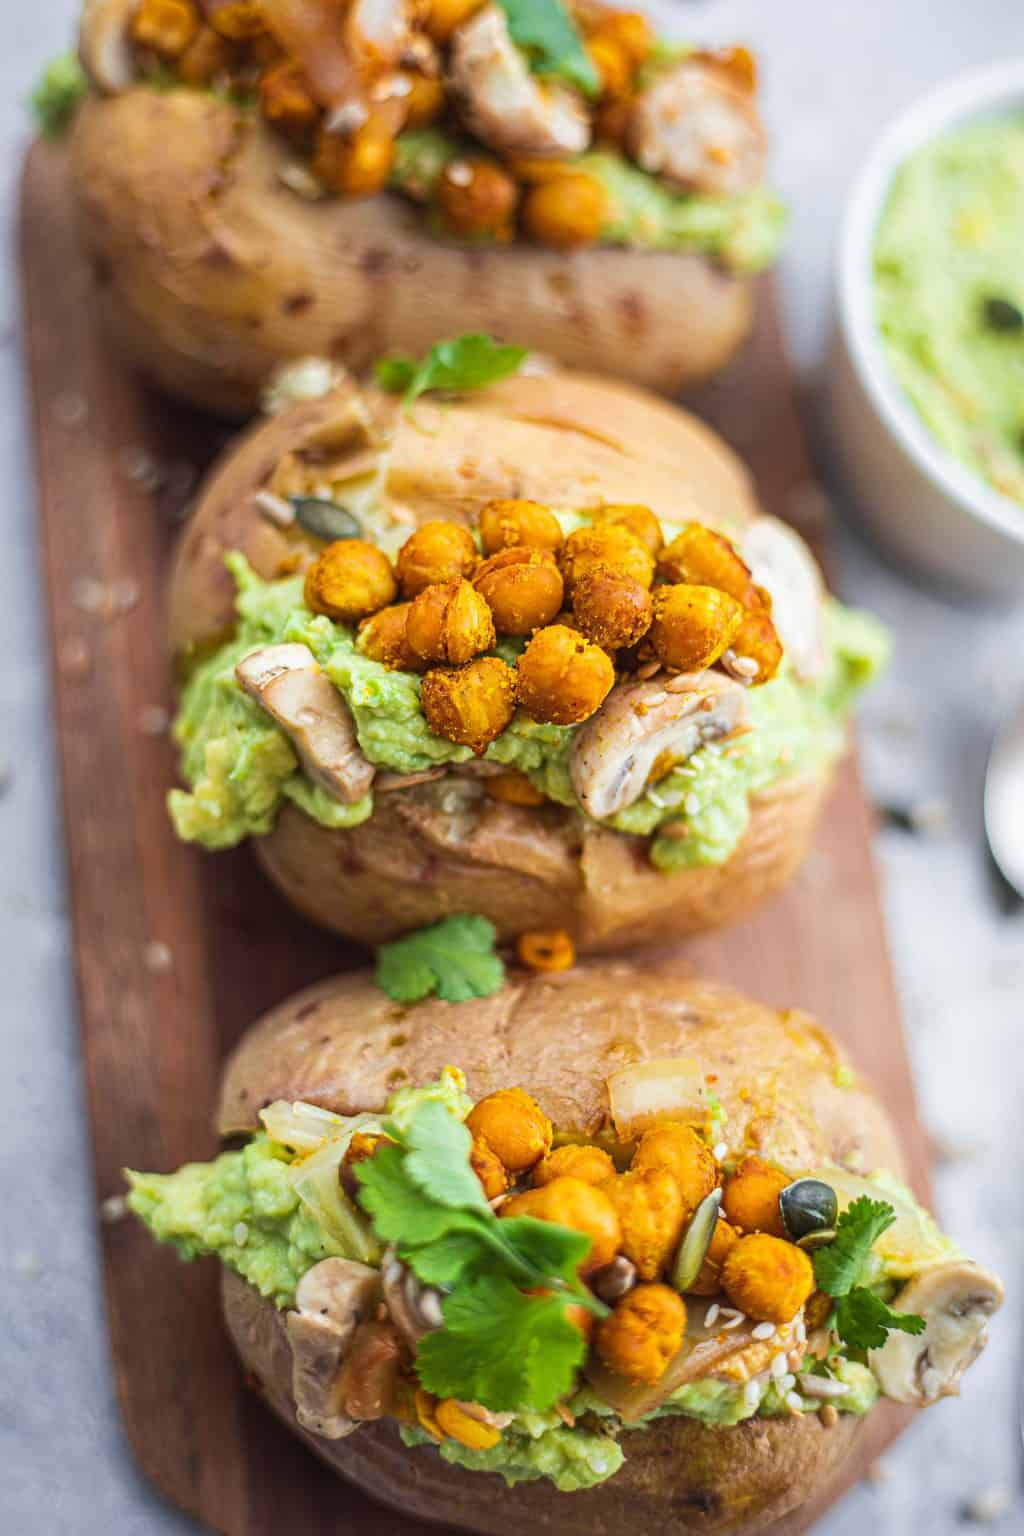 Jacket potatoes with chickpeas and avocado sauce